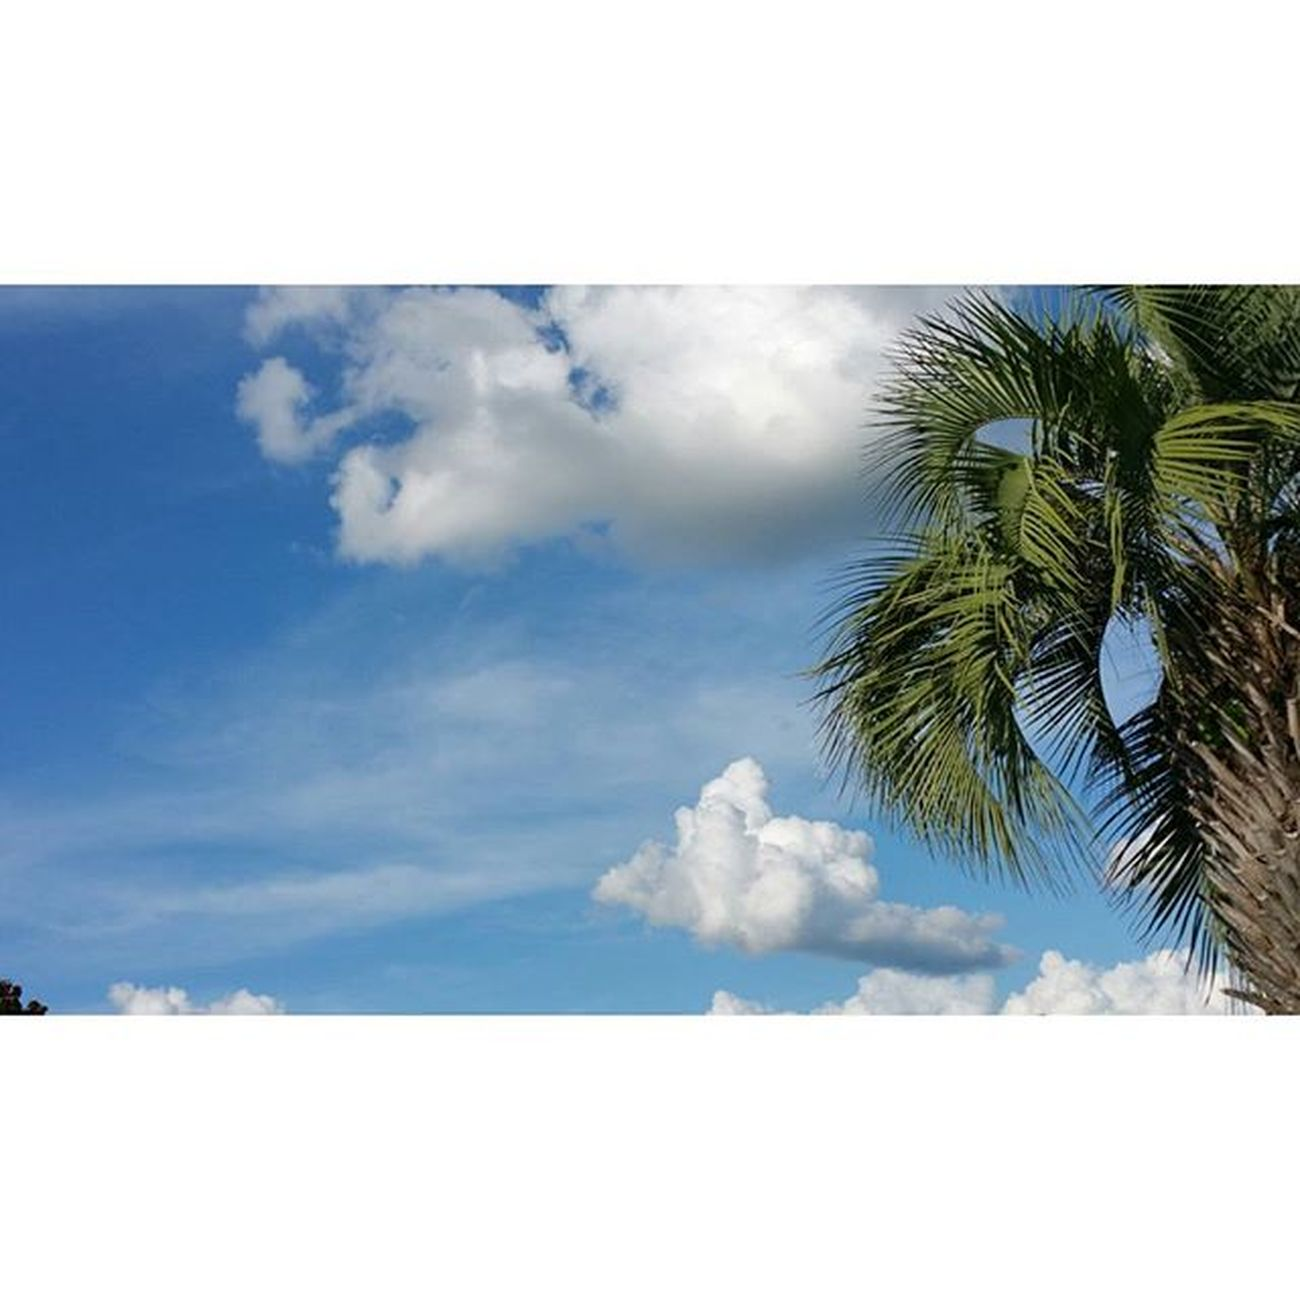 Yesterday. Hotbutbeautifulday Lowndescounty Georgia Southlife Southernliving Home Clouds Blue Beautiful Sky Palmtree Iloveclouds Palmtreephotobomb 😜 Thisskyiskillingme Iloveit Jw Jehovah Ourgrandcreator Jehovahscreation Jwlife Jwlady Visualsjw Jwphotography Igsky Naturelover natureshot amazing_skyshotz samsung galaxynote4 ❤